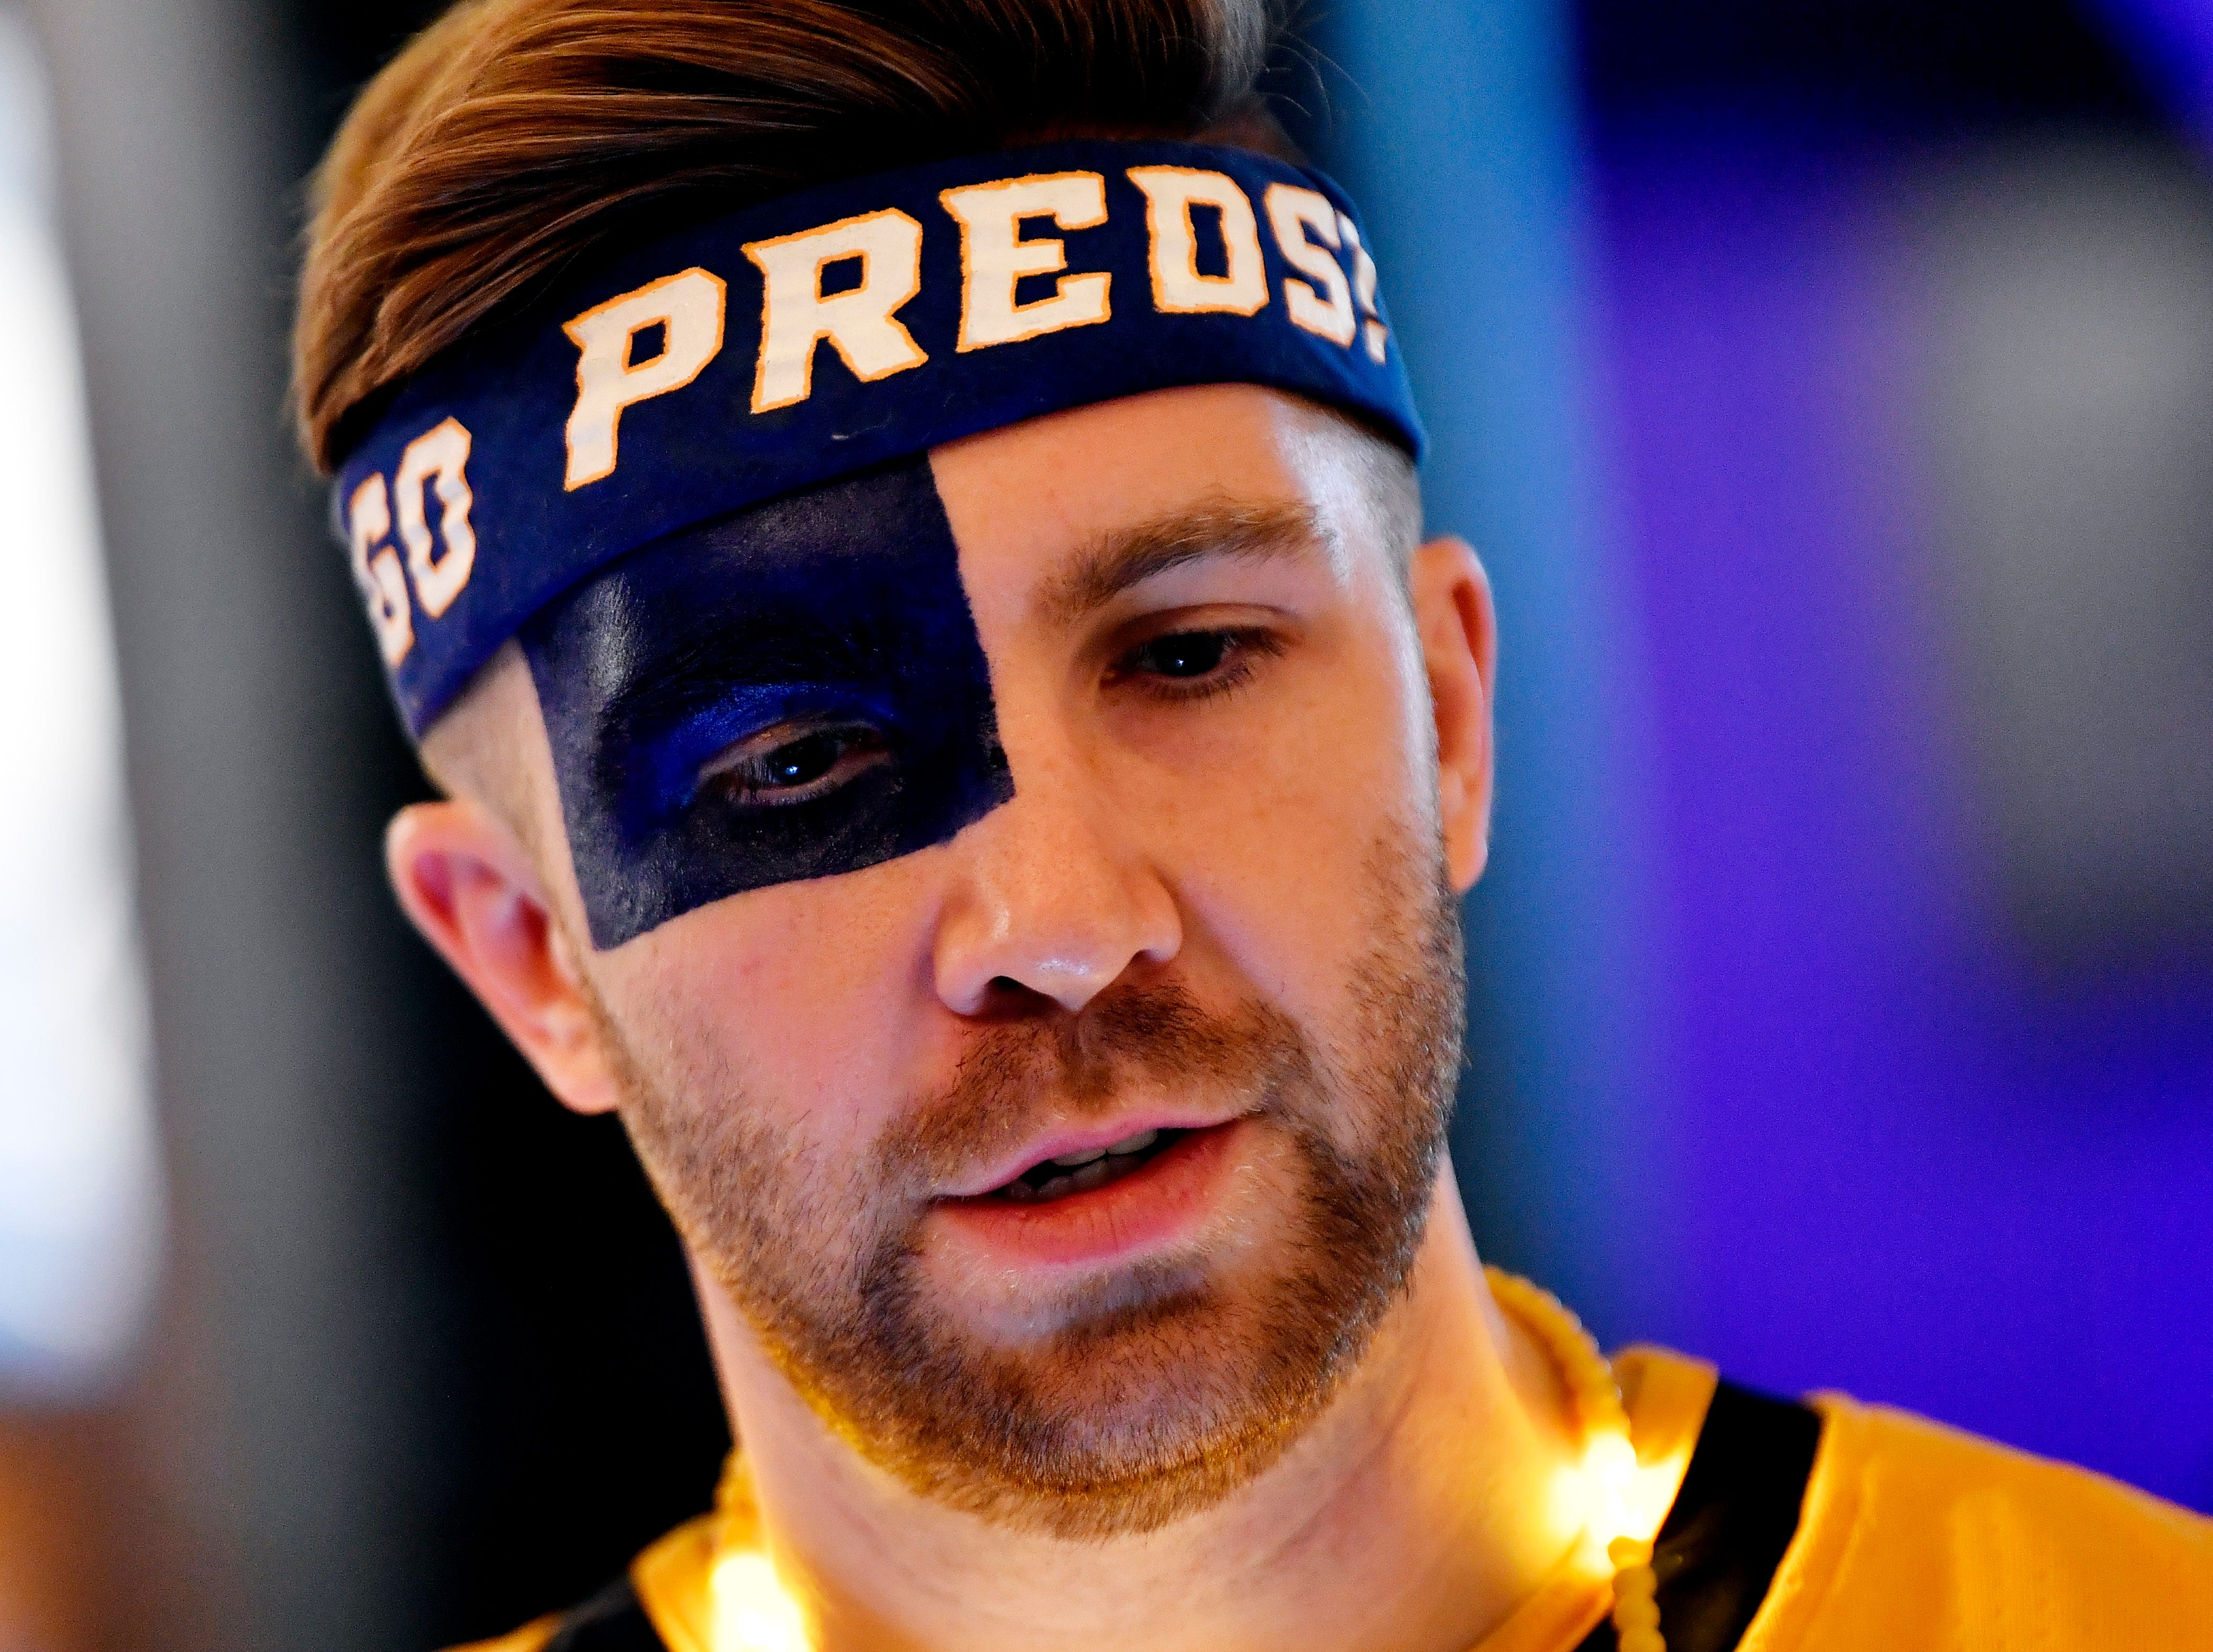 Kyle Miller is decked out in Preds' gear for the divisional semifinal game against Dallas at Bridgestone Arena in Nashville, Tenn., Saturday, April 13, 2019.